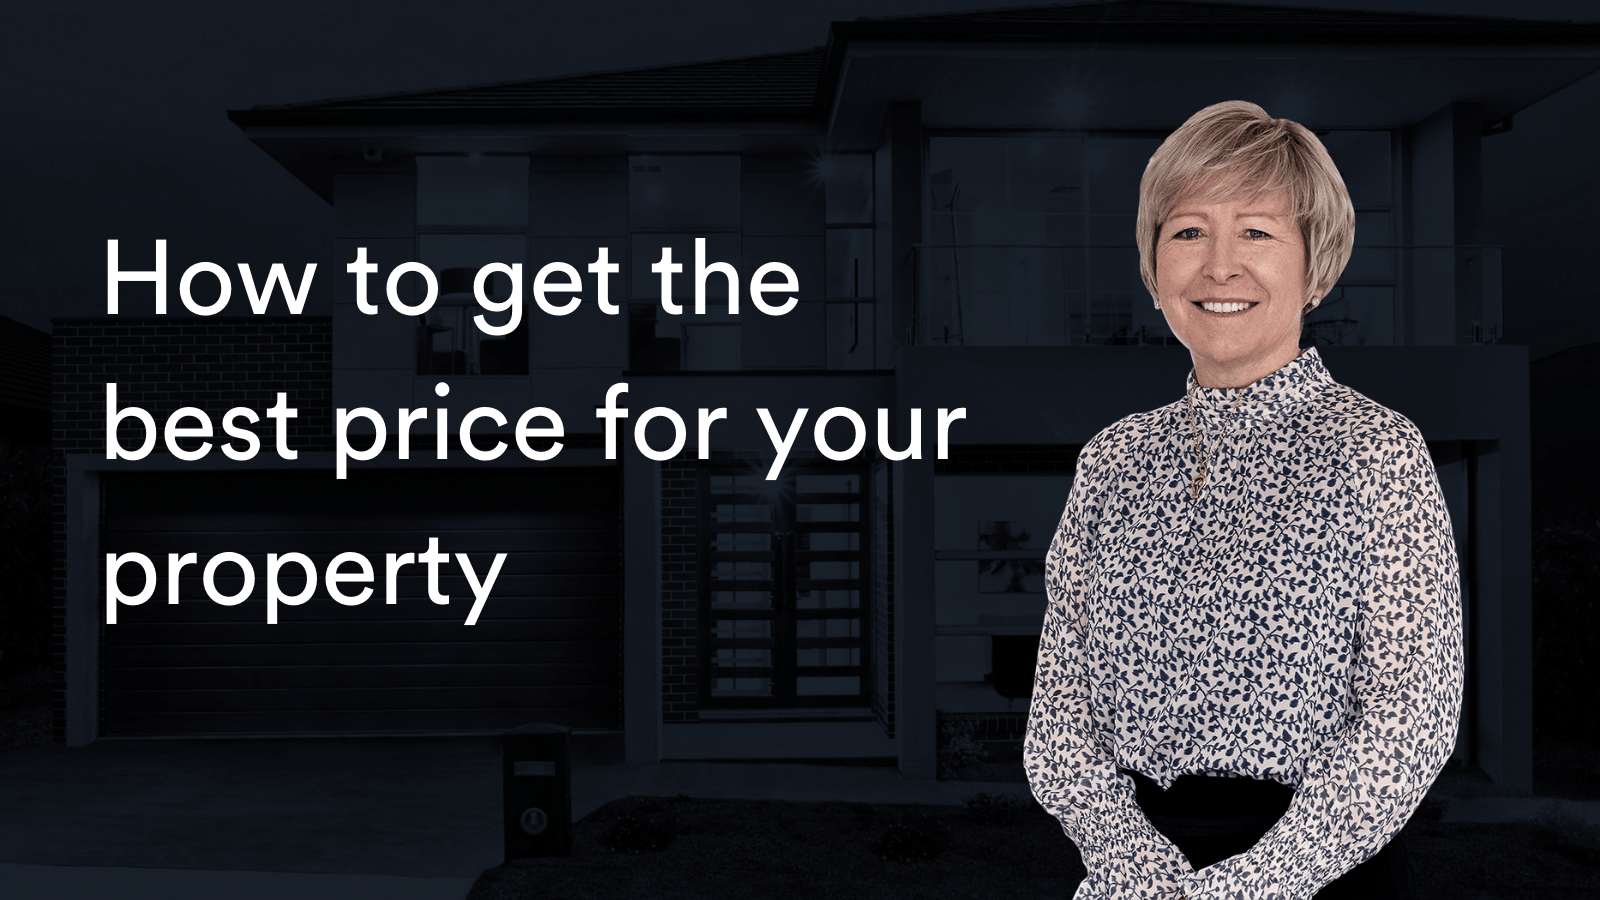 Masterclass: How to get the best price for your property